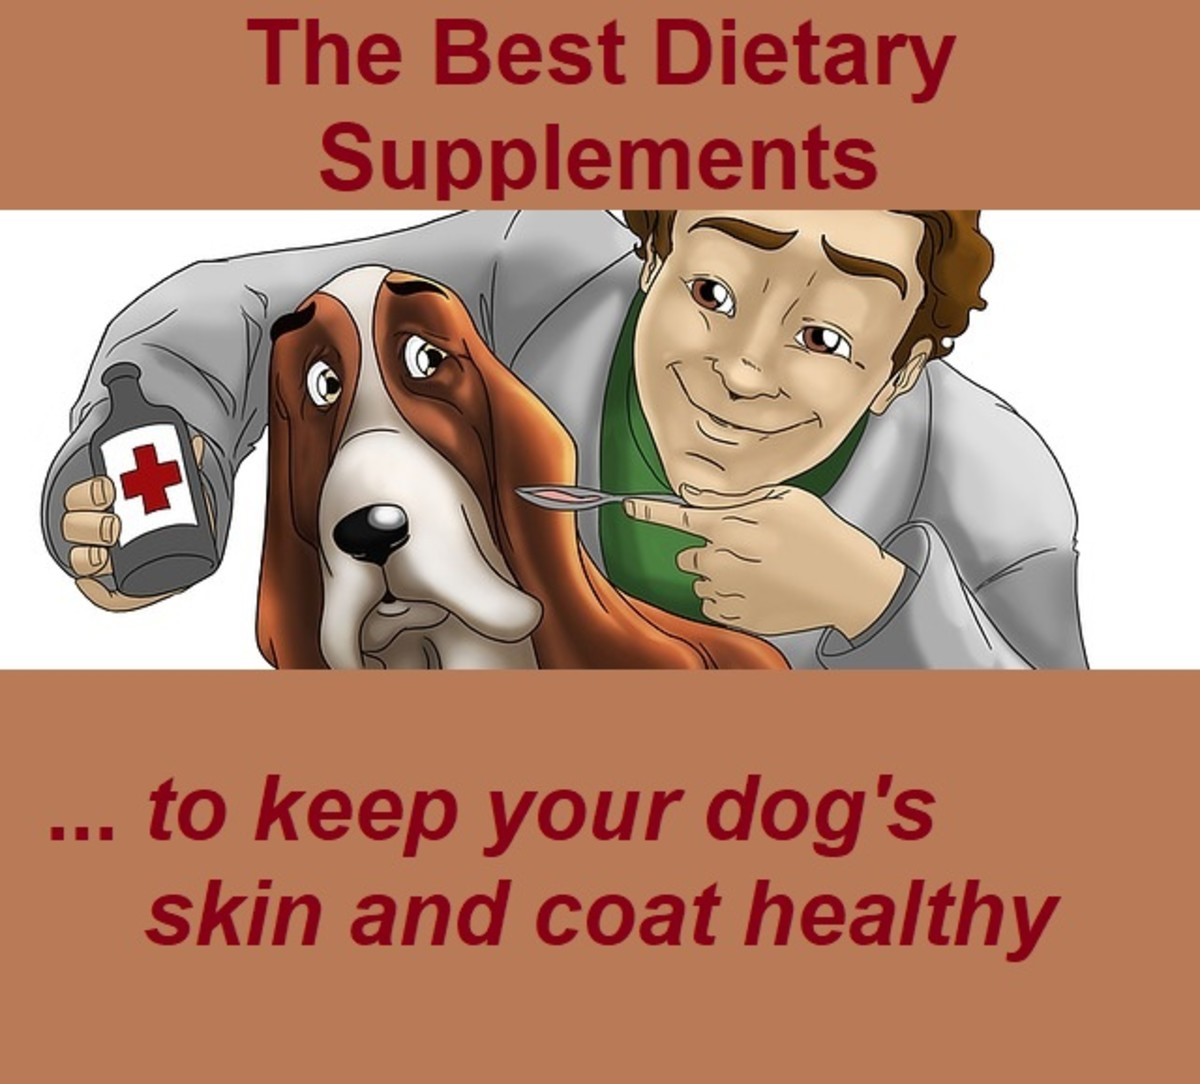 The Best Dietary Supplements to Keep Your Dog's Skin and Coat Healthy